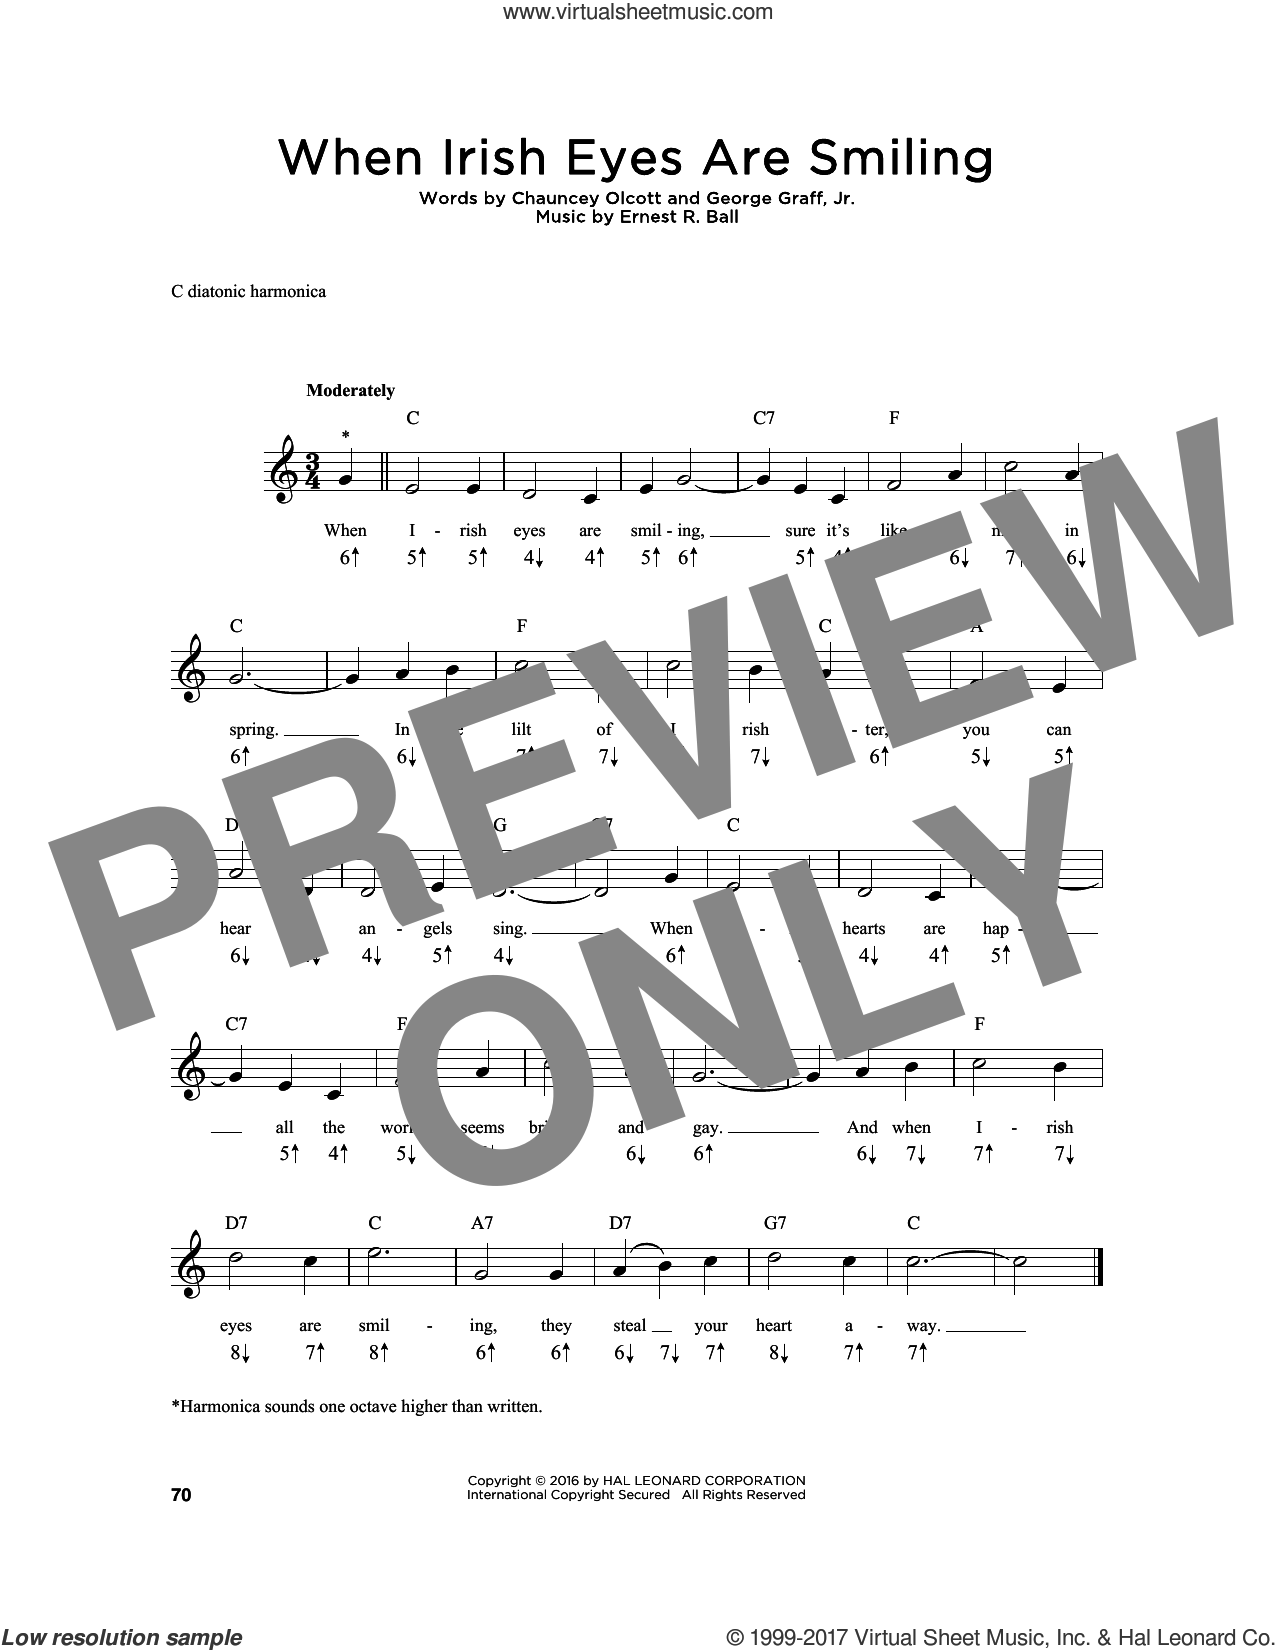 When Irish Eyes Are Smiling sheet music for harmonica solo by Chauncey Olcott, Ernest R. Ball and George Graff Jr., intermediate skill level